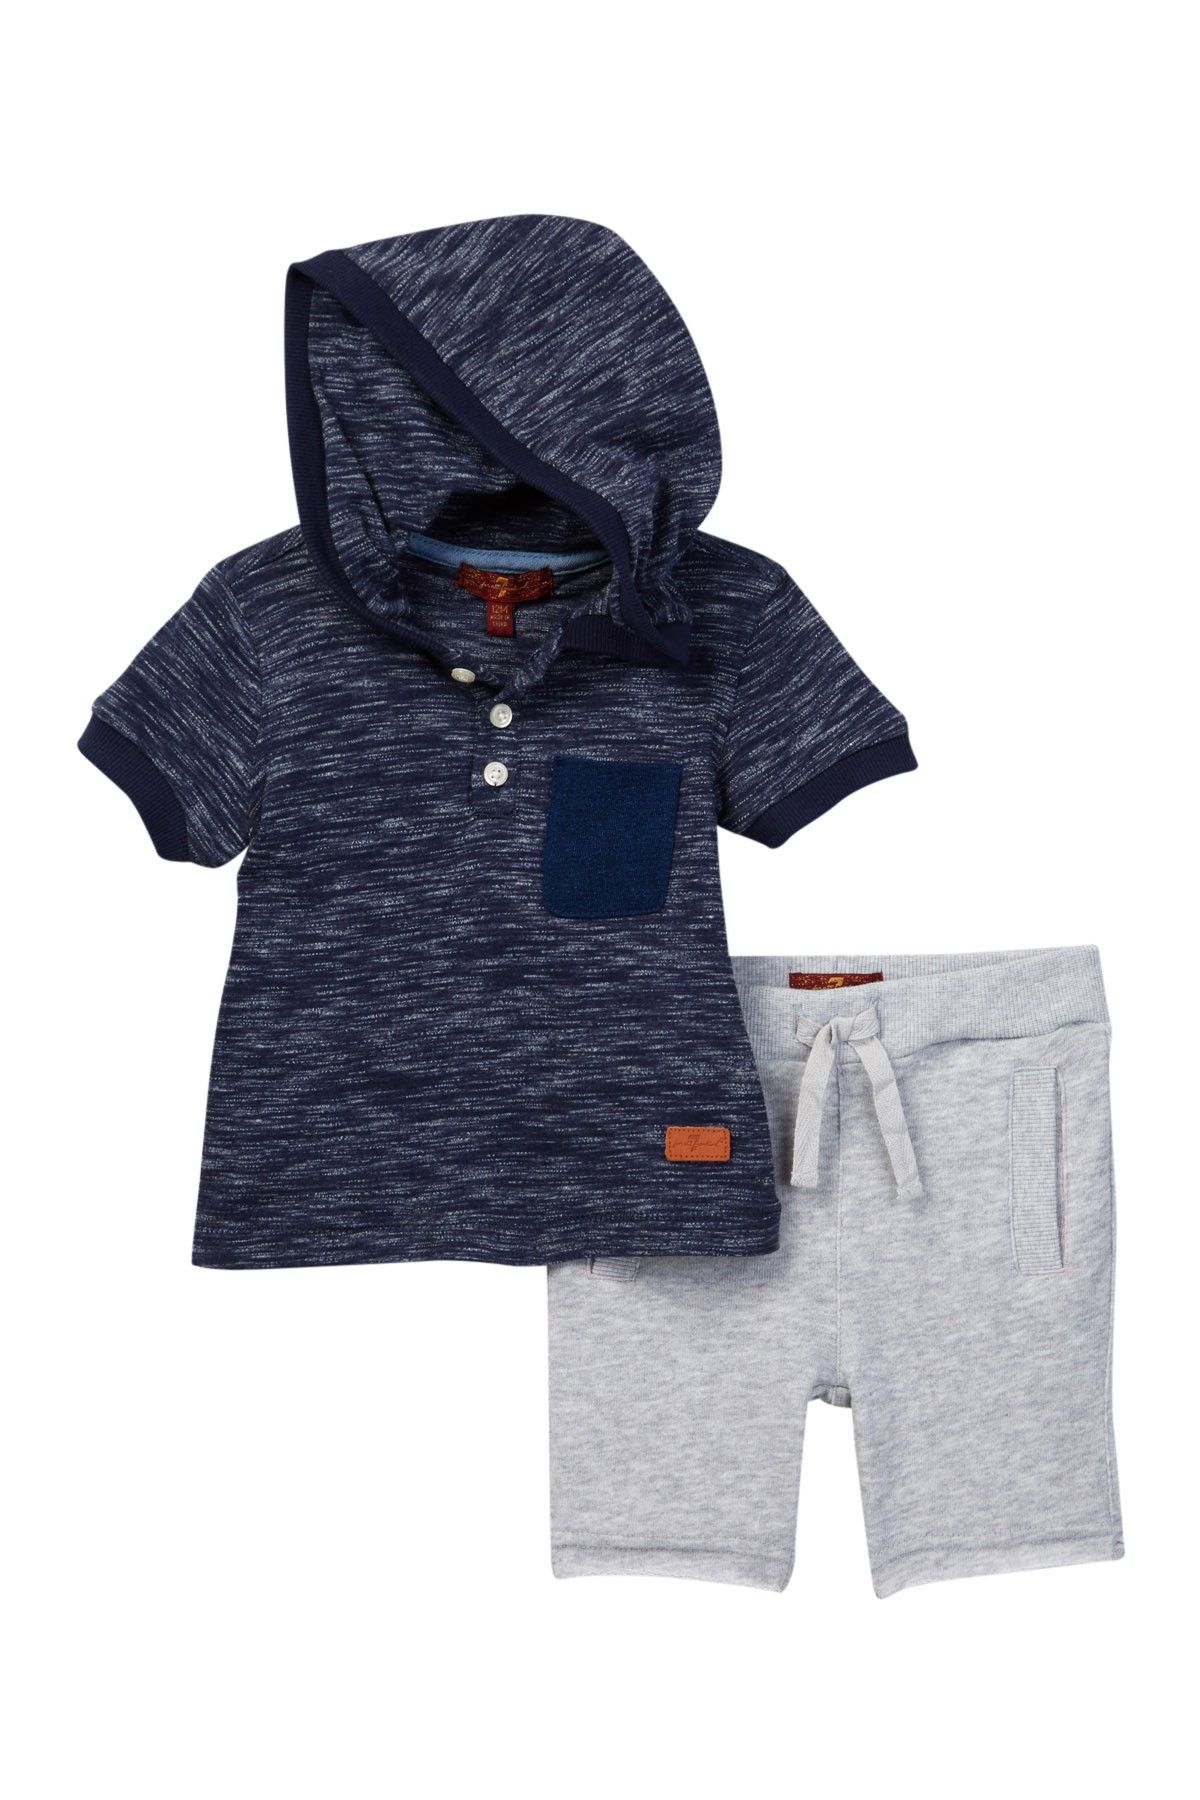 7 For All Mankind Hooded Top & Athletic Short Set (Baby